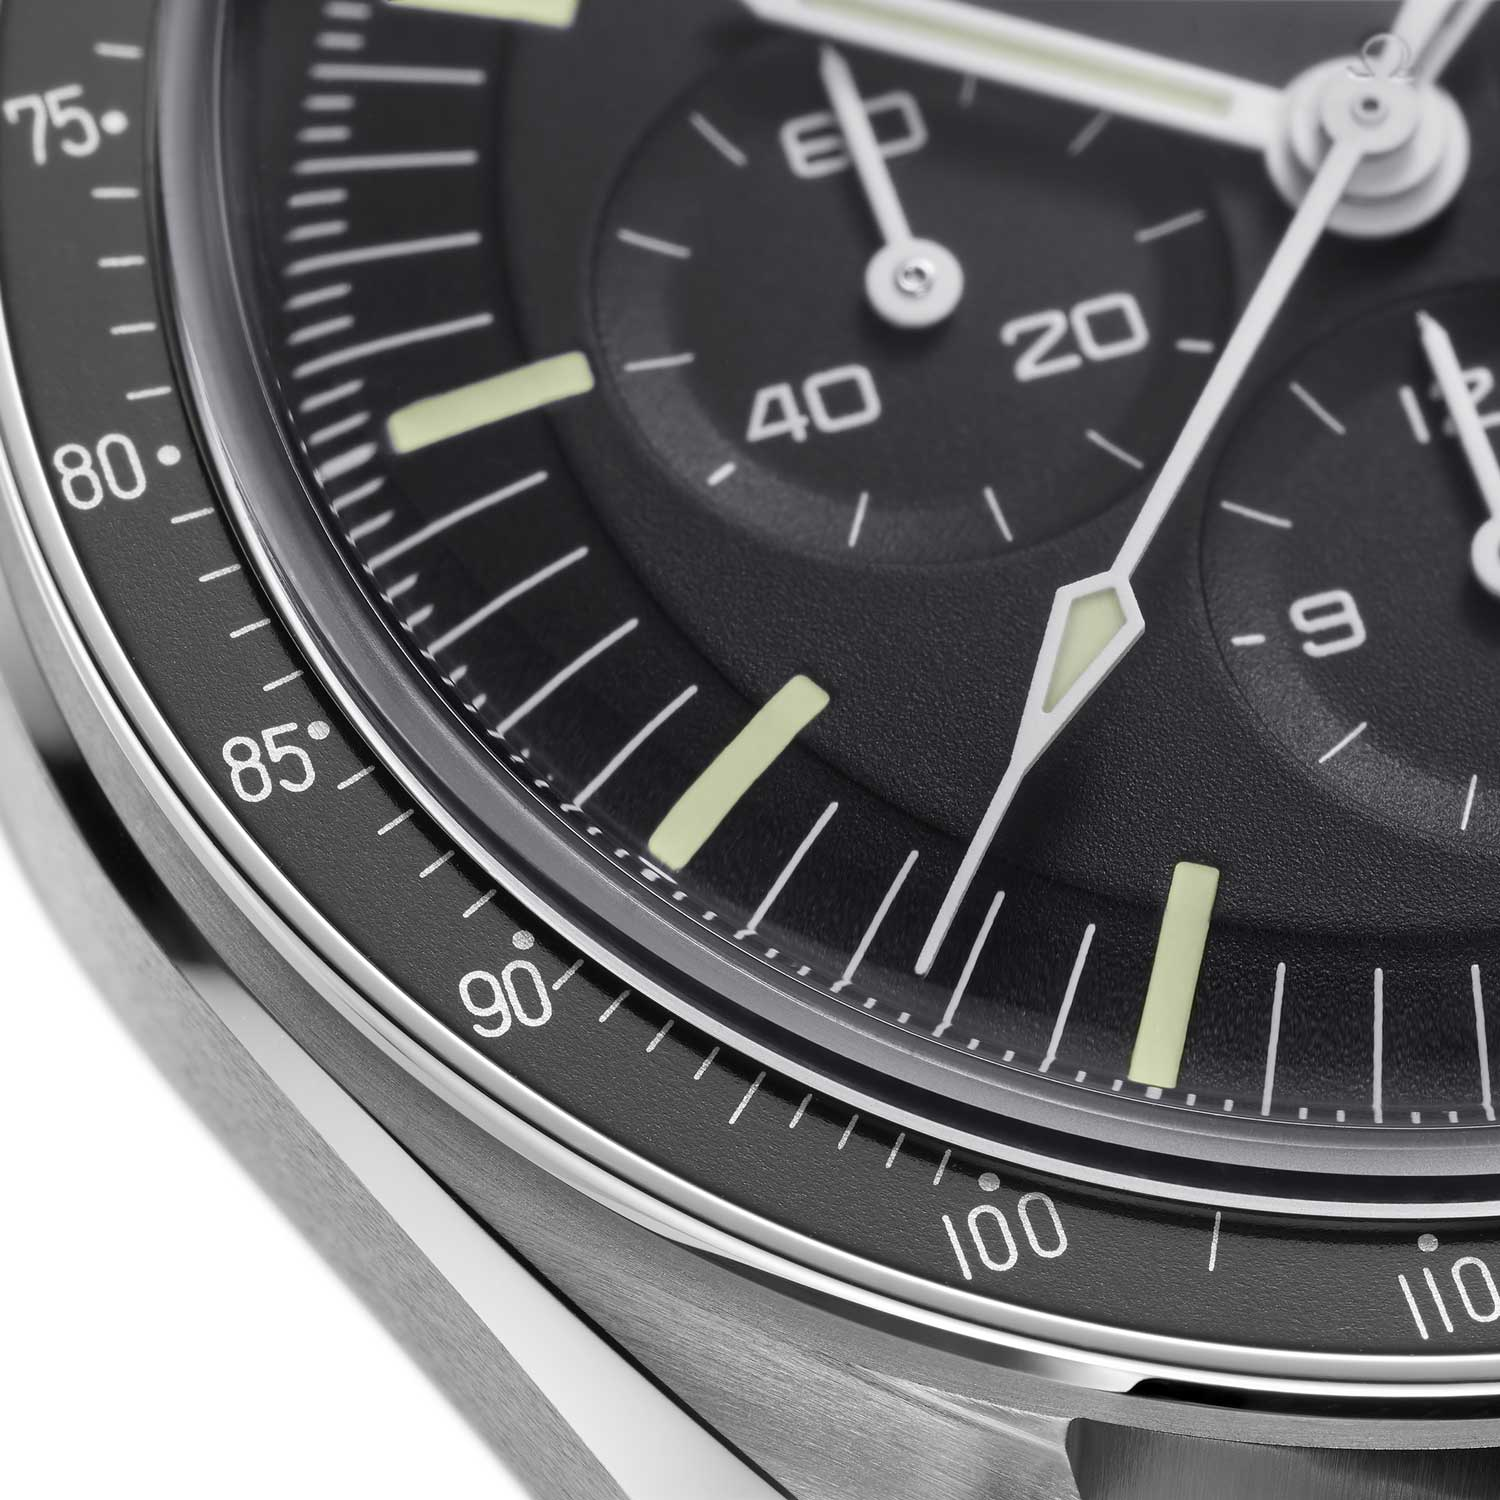 The bezel on 2021 Speedmaster is an anodized aluminum insert that has been given the famous dot over 90 (DON) detail